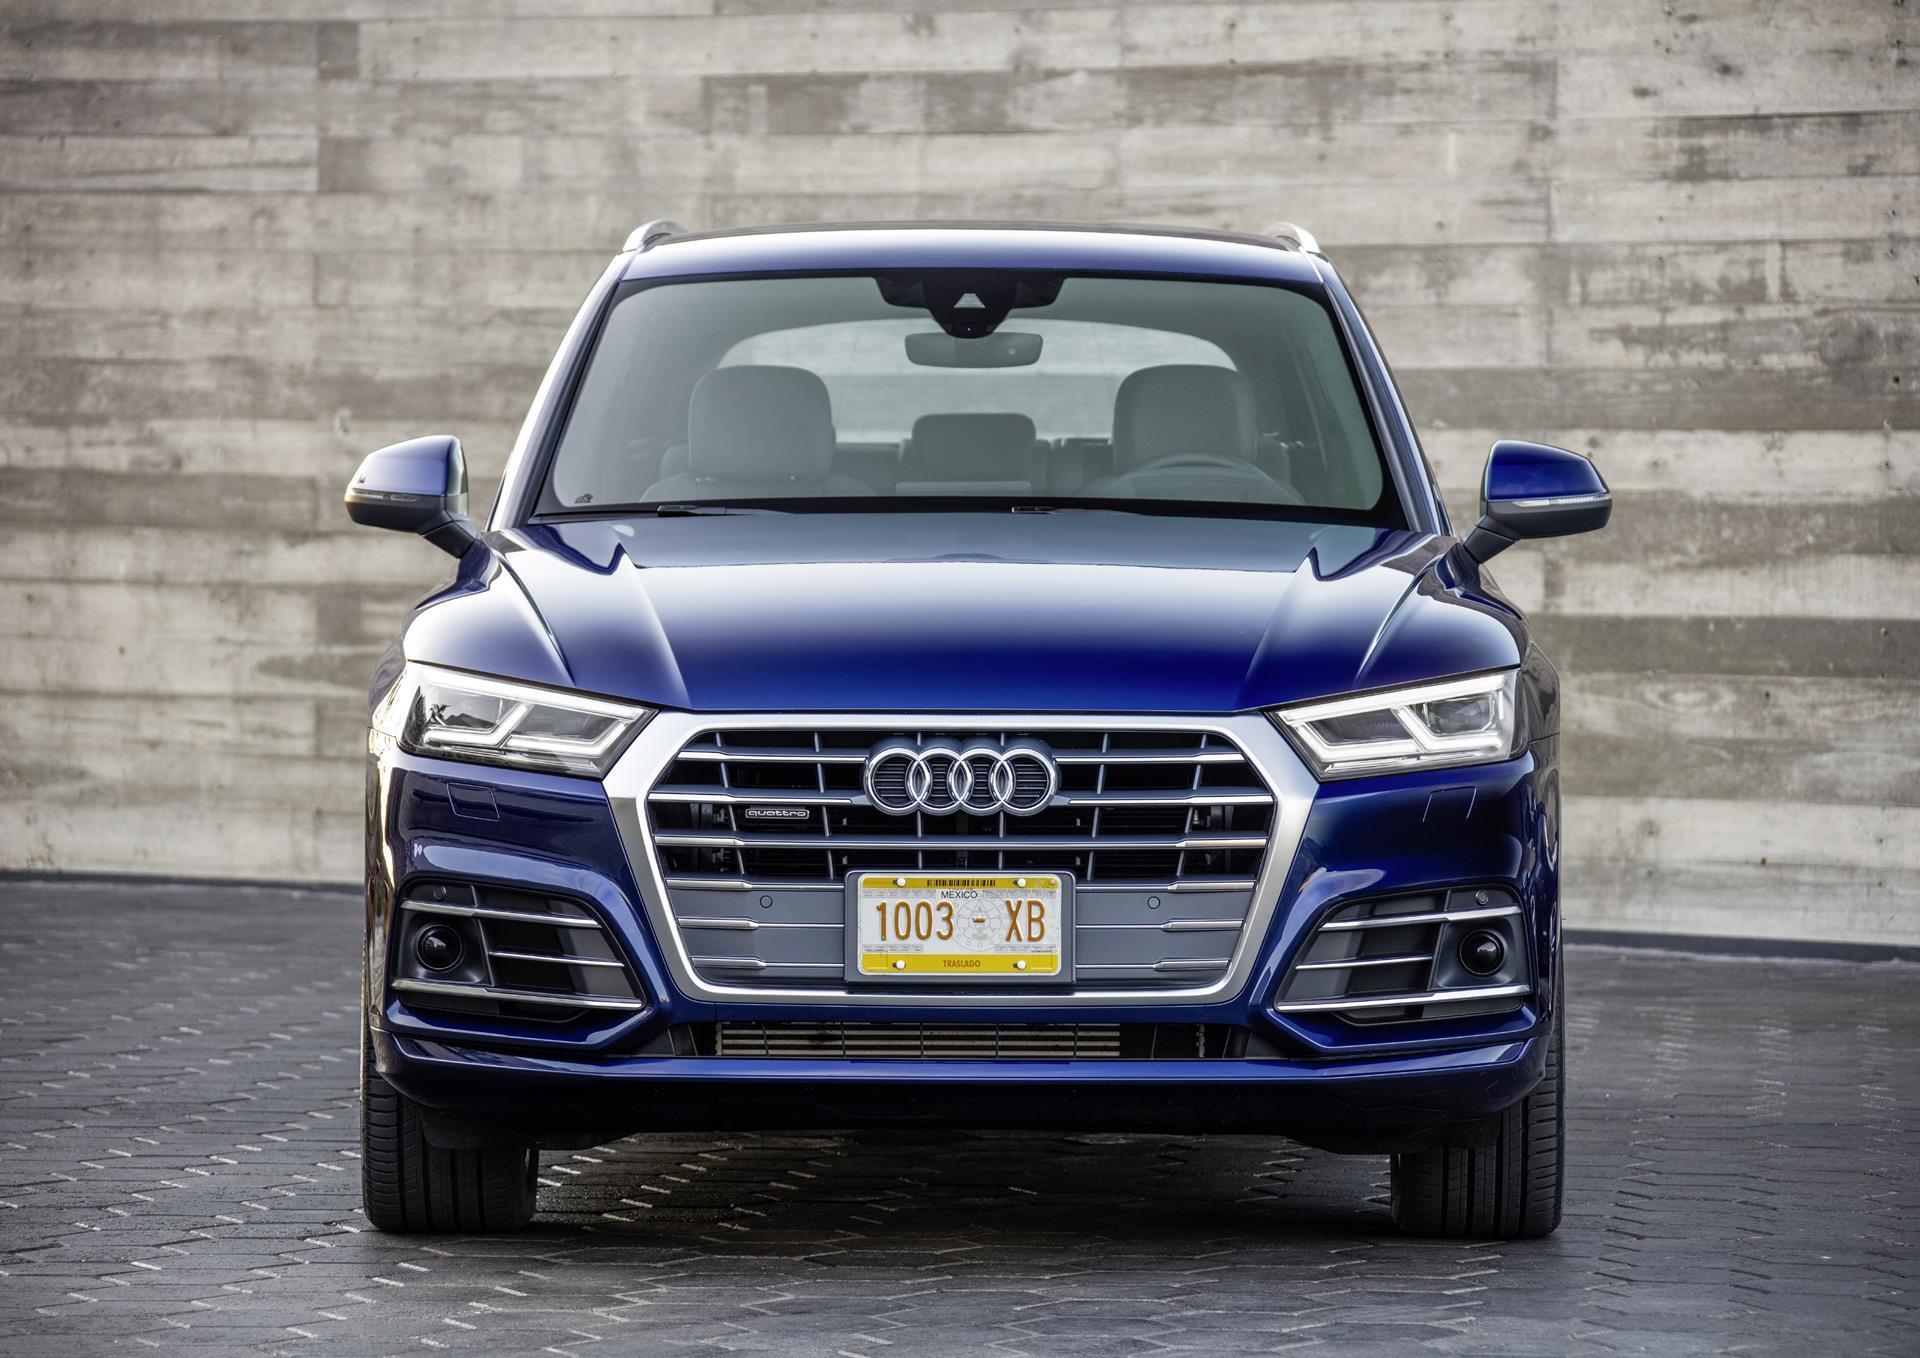 2018 Audi Q5 News and Information